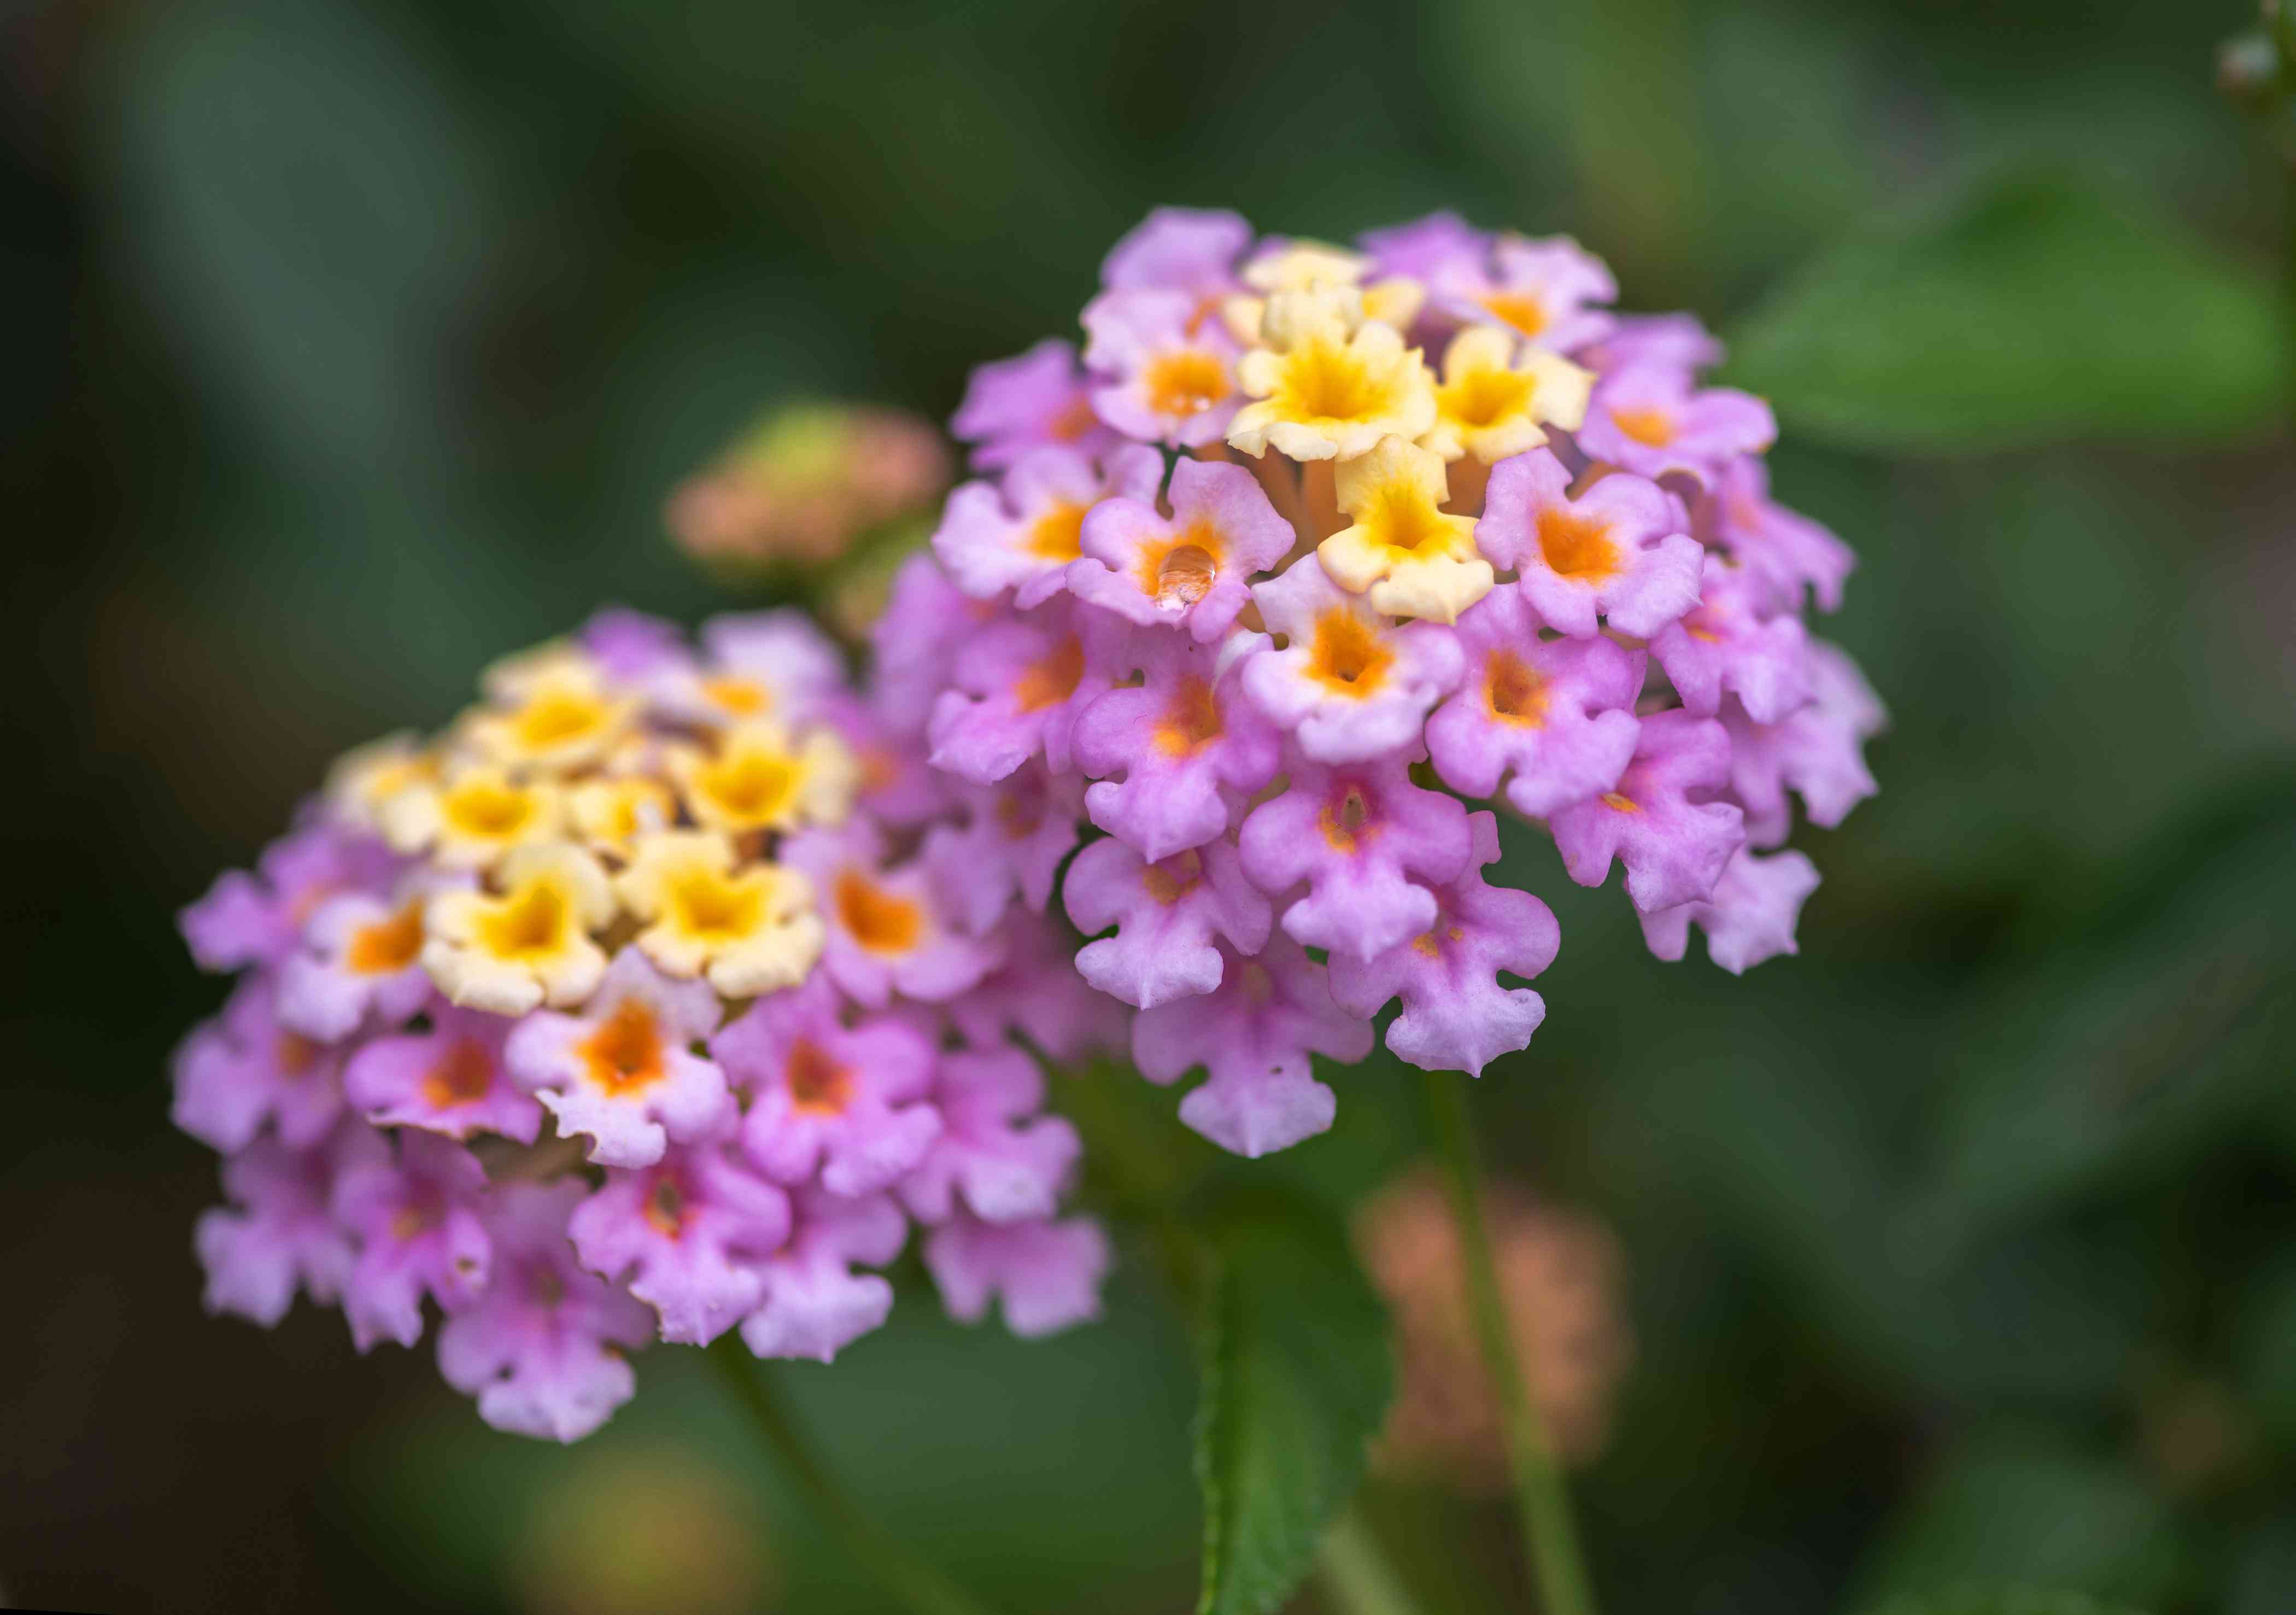 Lantana plant with tiny yellow and pink-purple flowers clustered together on stem ends closeup